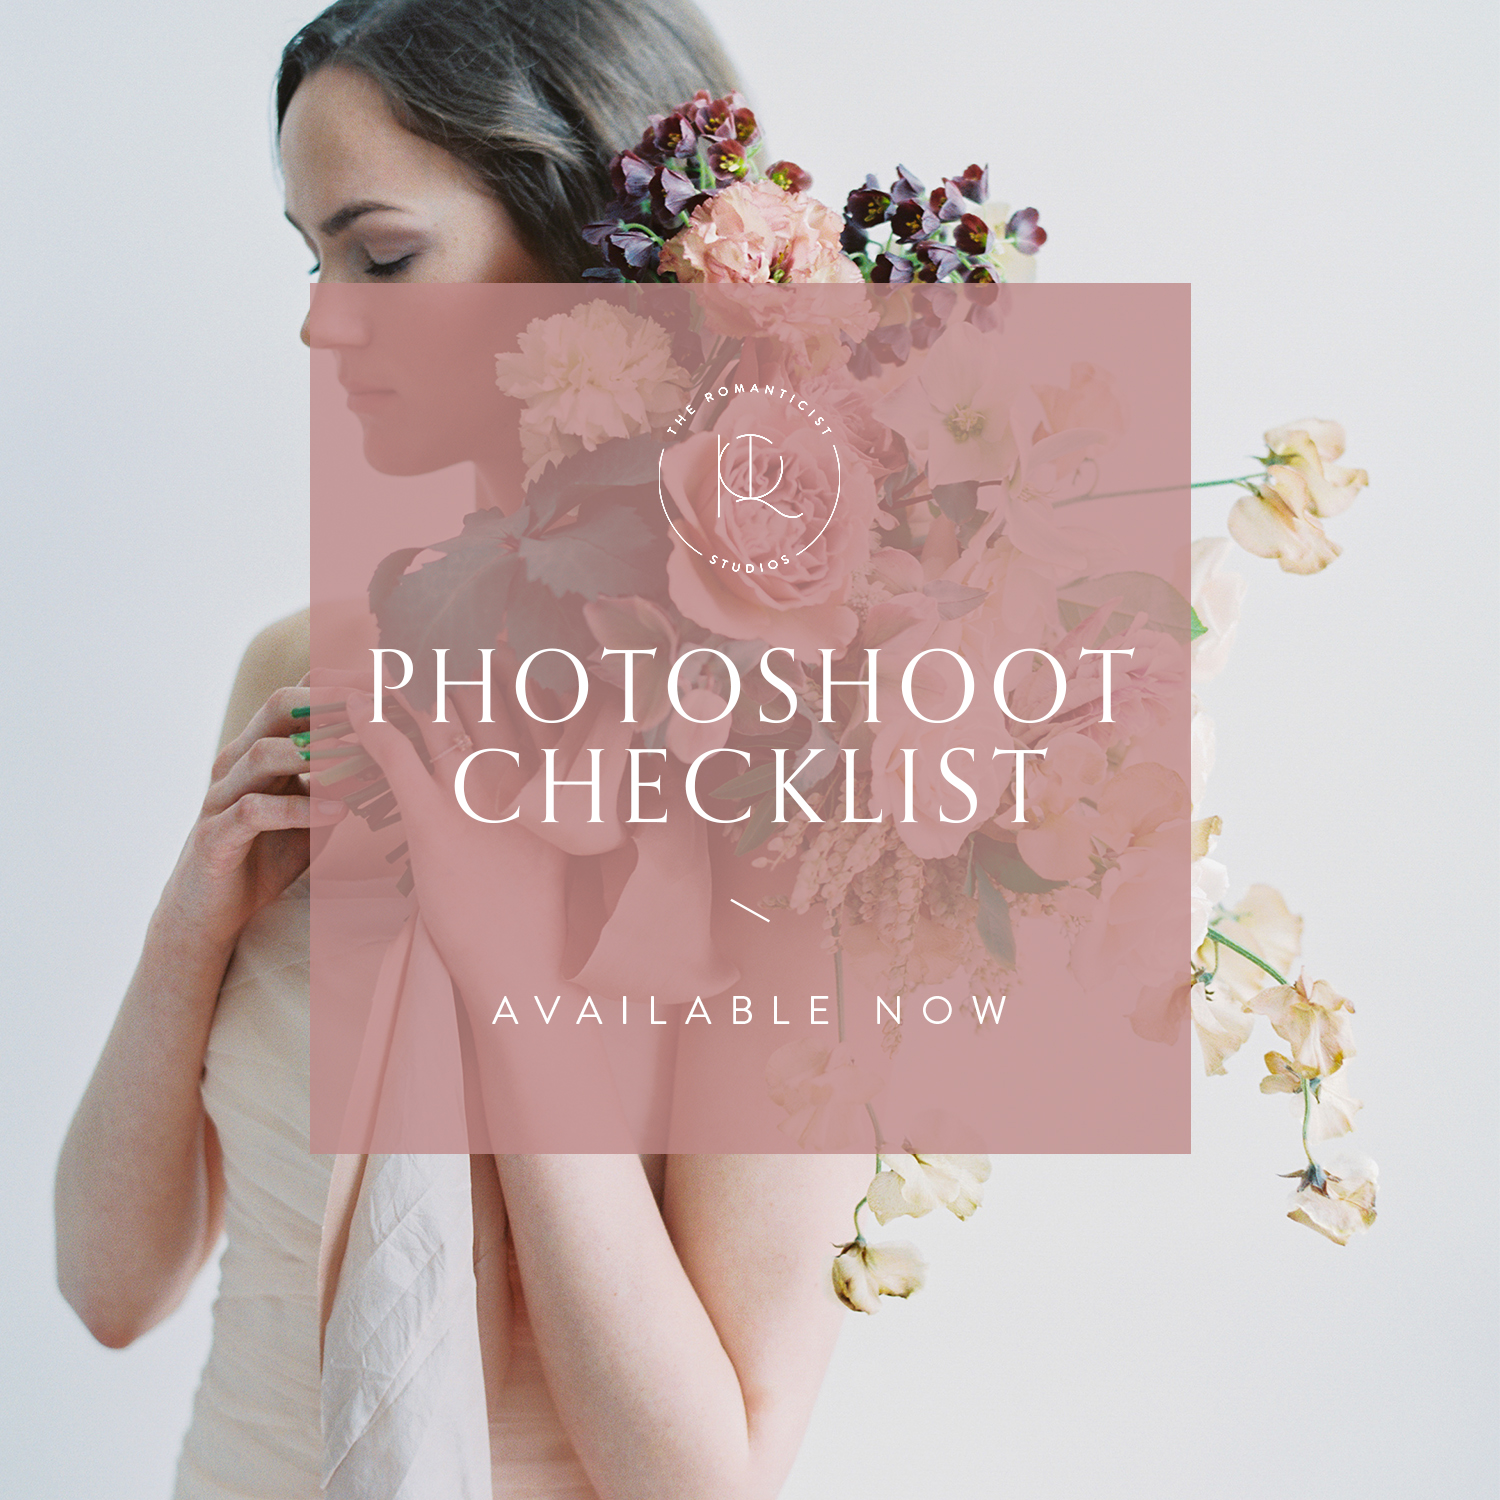 The Romanticist Method - 5 free resources you need to create a photoshoot that is beautiful and profitable